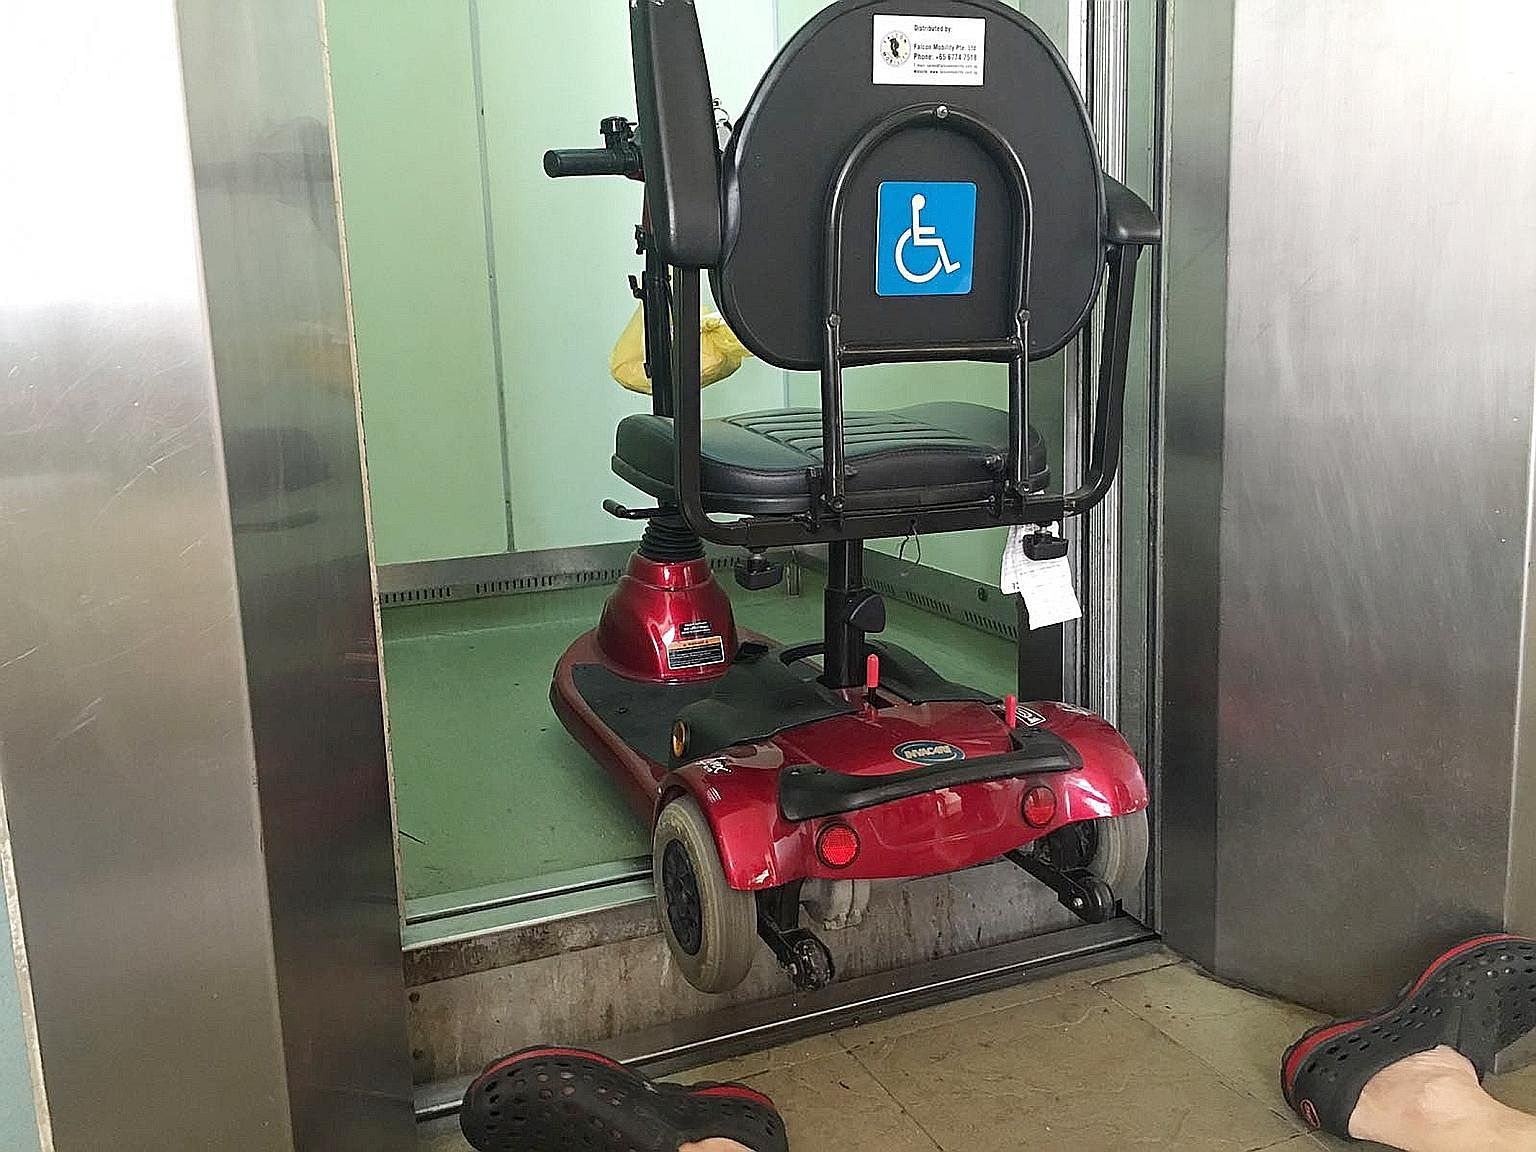 Man's fatal fall: Lift had history of 'mislevelling', Courts